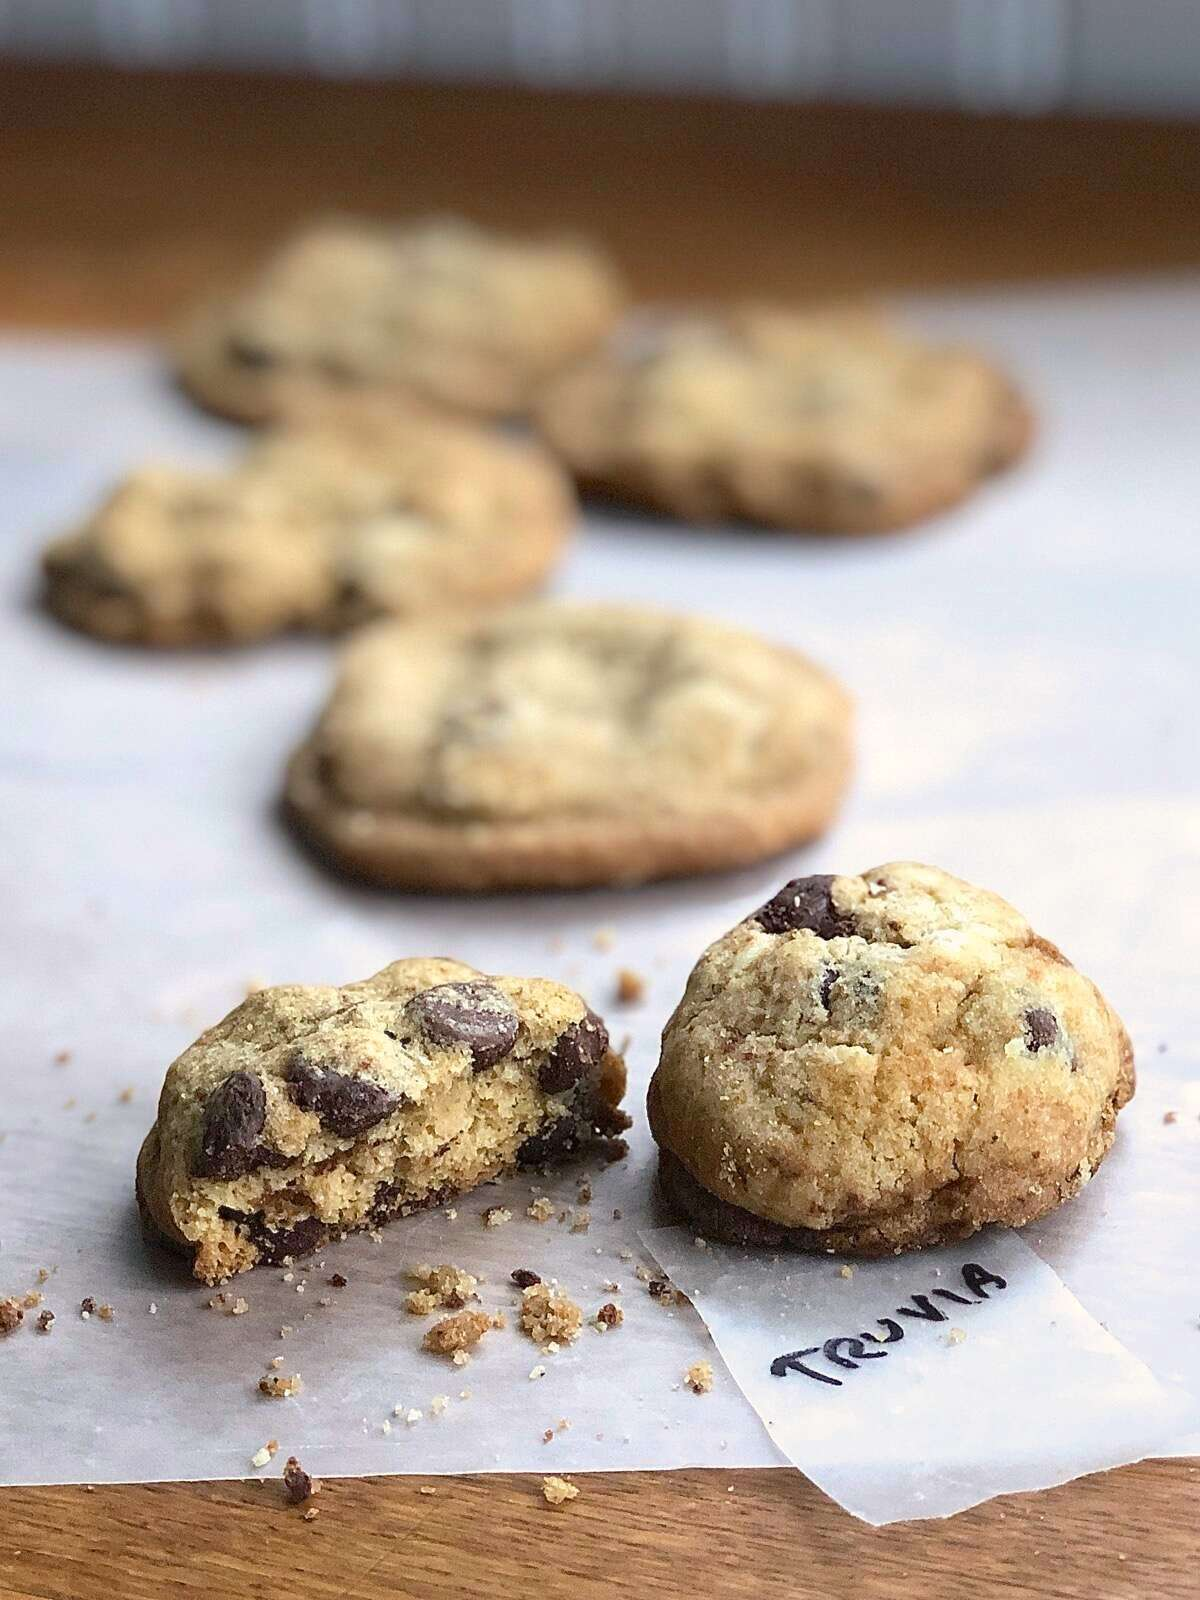 Chocolate chip cookies baked with Truvia Cane Sugar Blend.